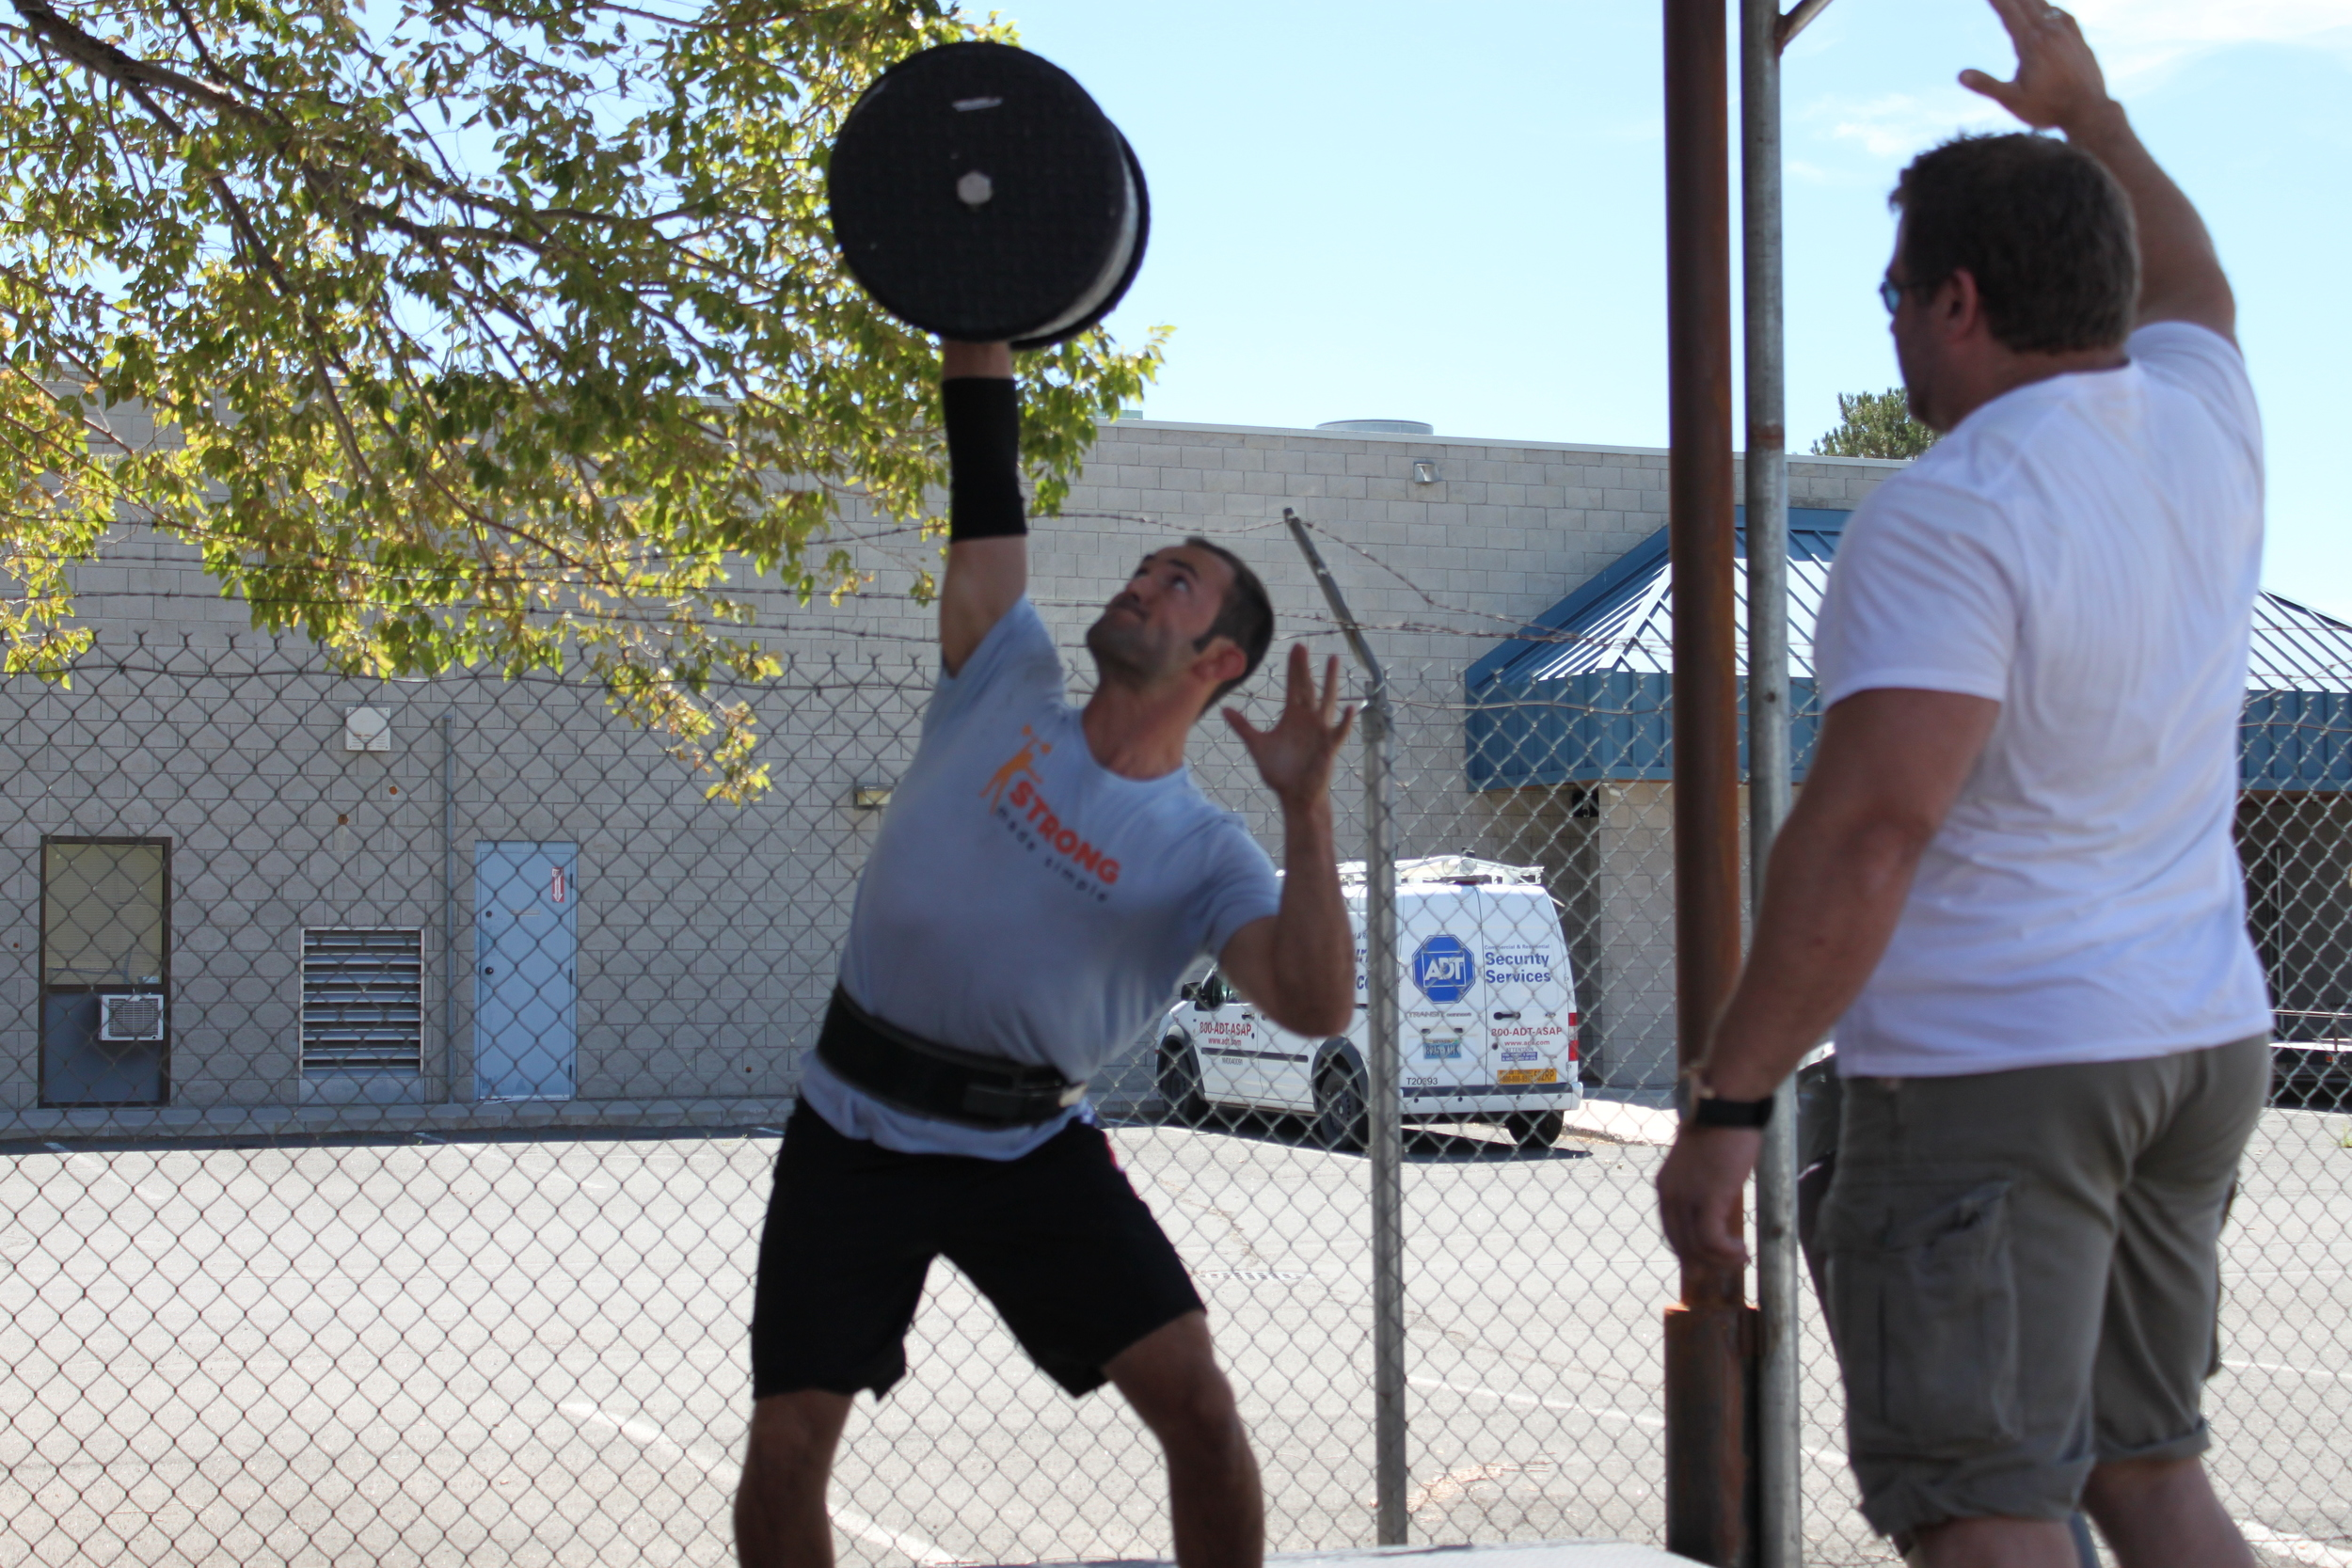 San Diego personal trainer, Brian Tabor, completes a 1 arm circus dumbbell press in a strongman competition